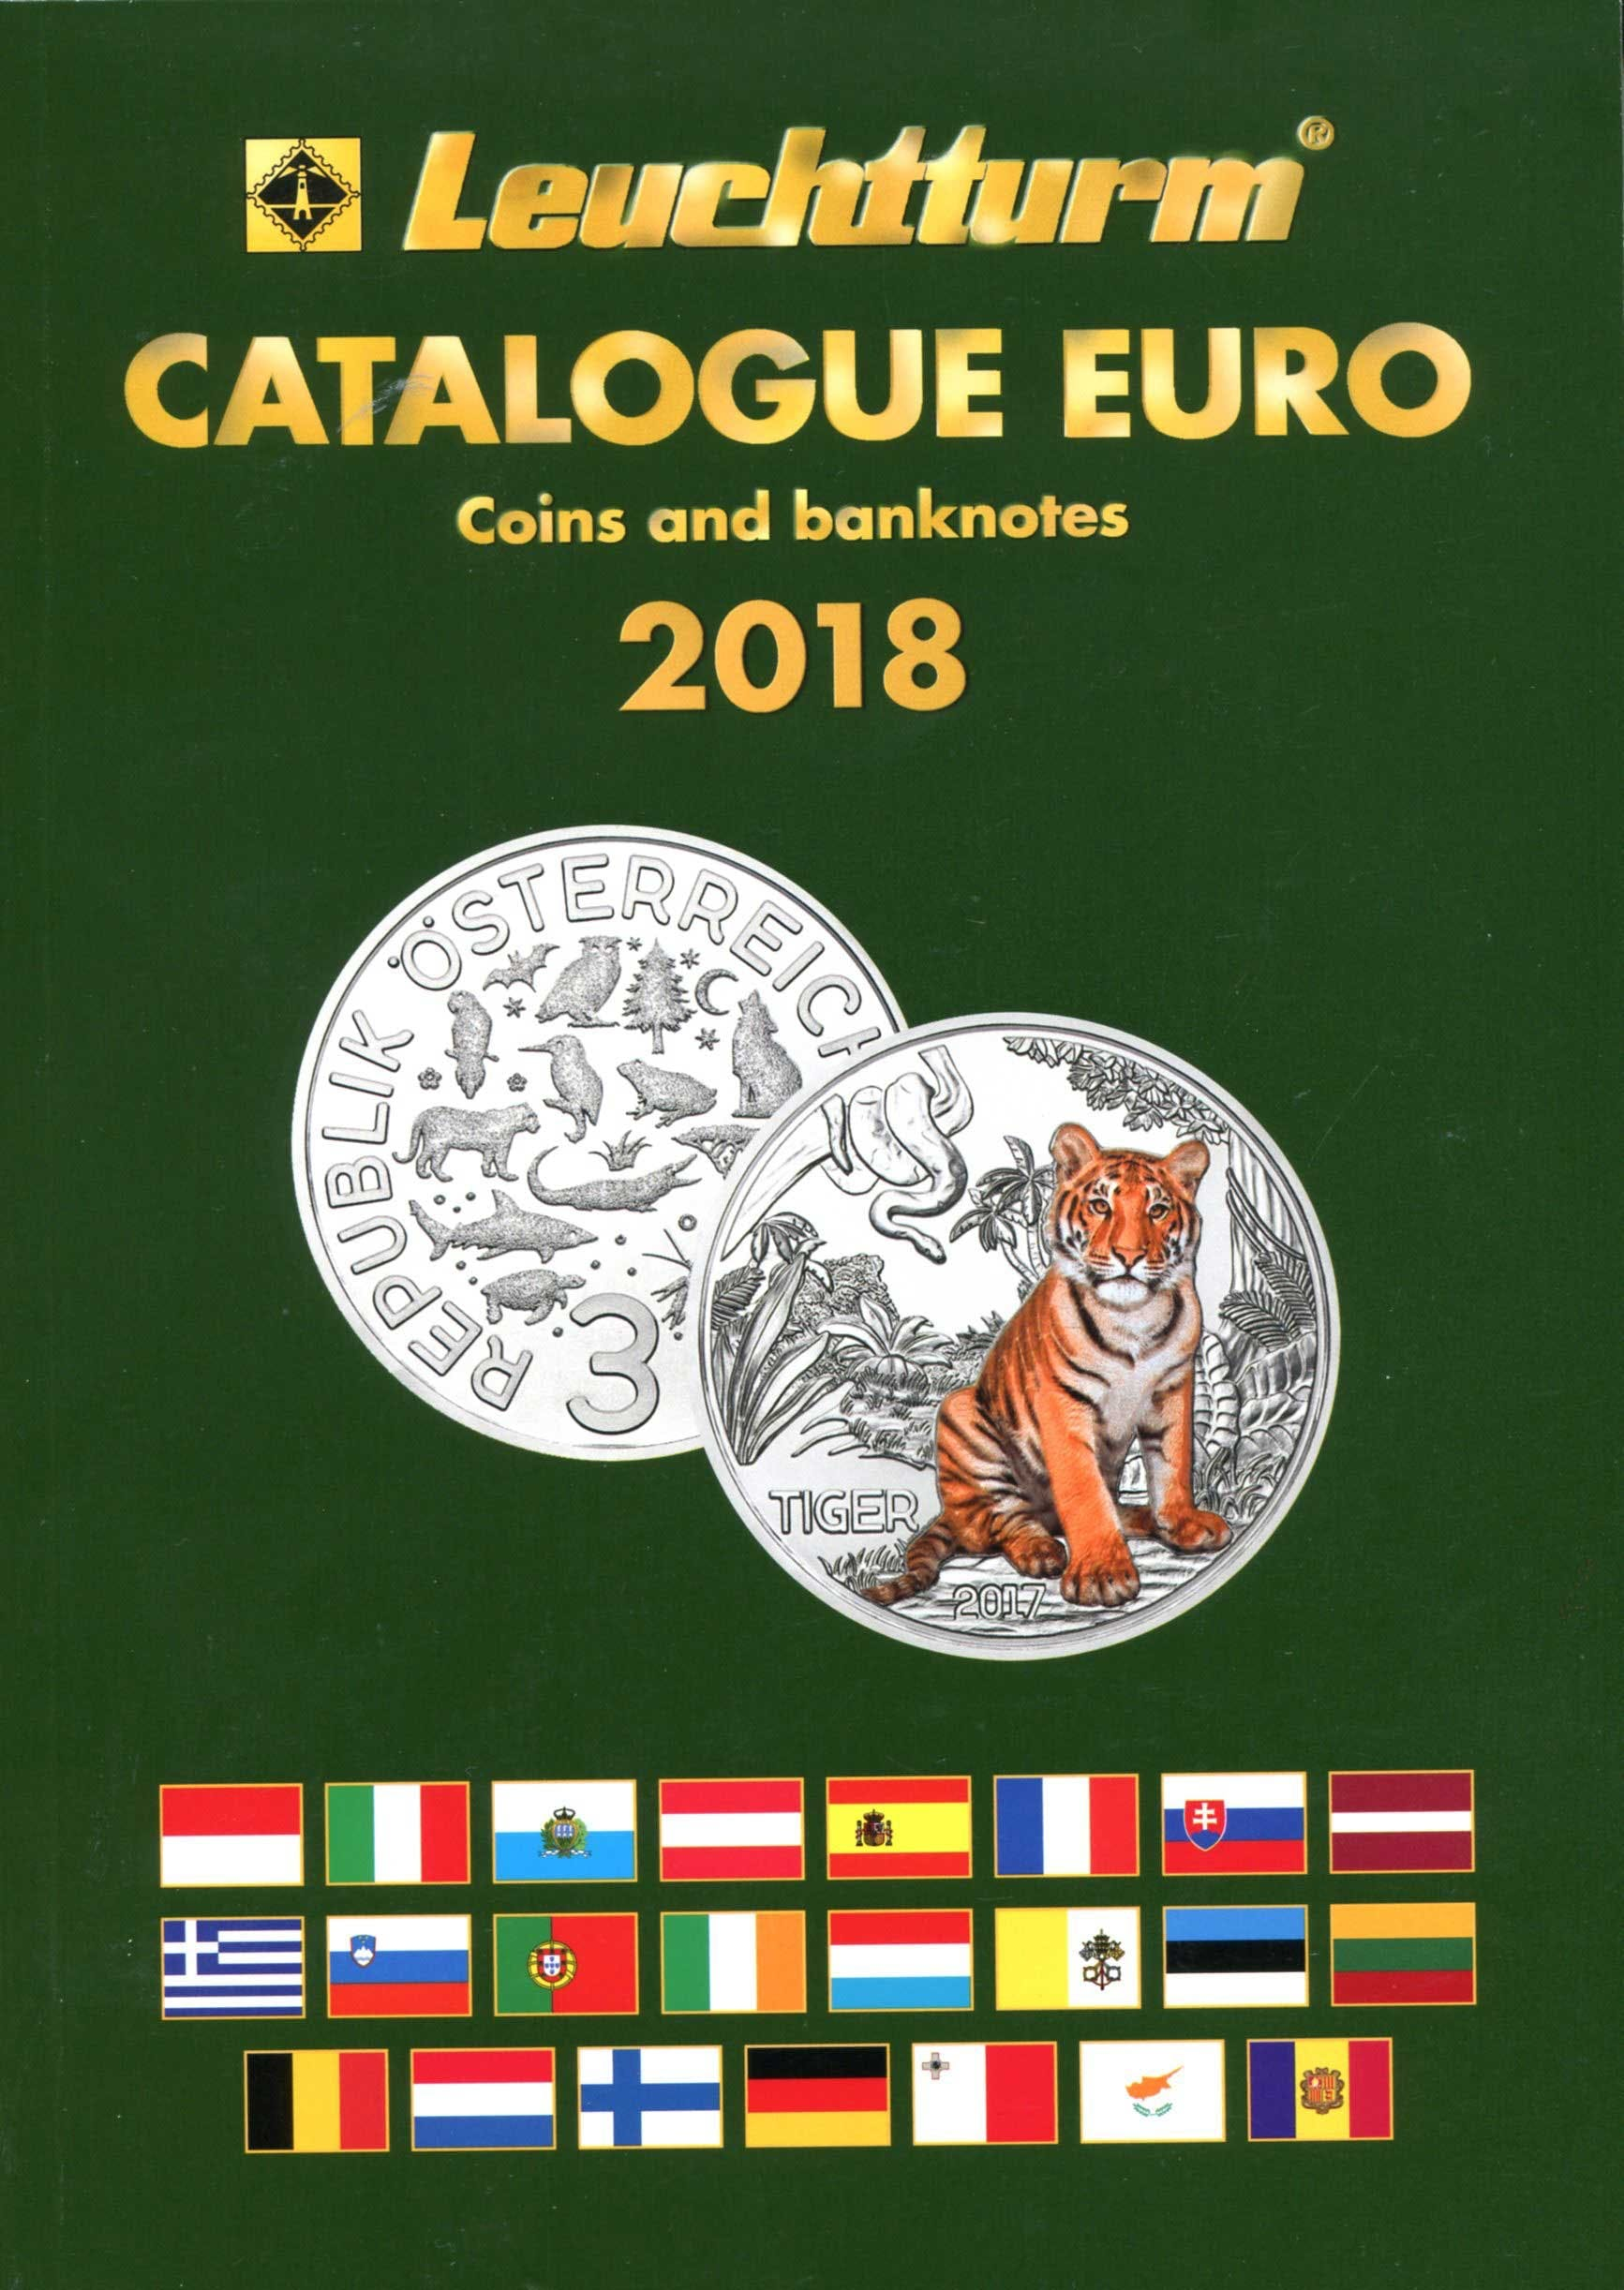 Euro Catalogue 2018 in the Token Publishing Shop